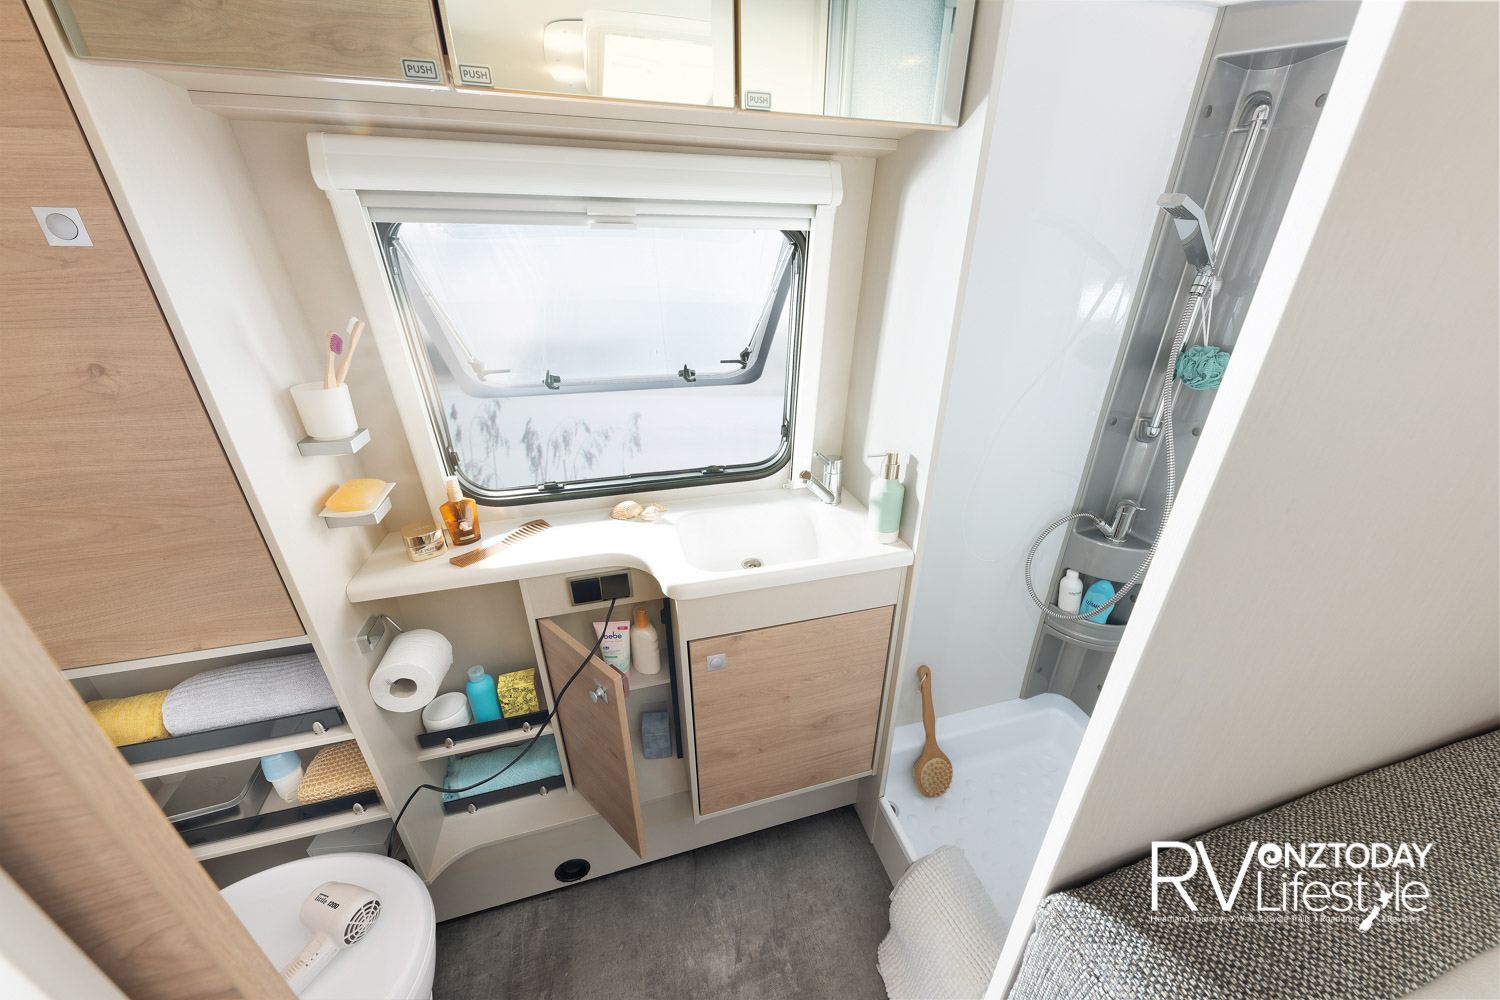 At the rear is the full-size bathroom with separate shower cubicle and premium vanity